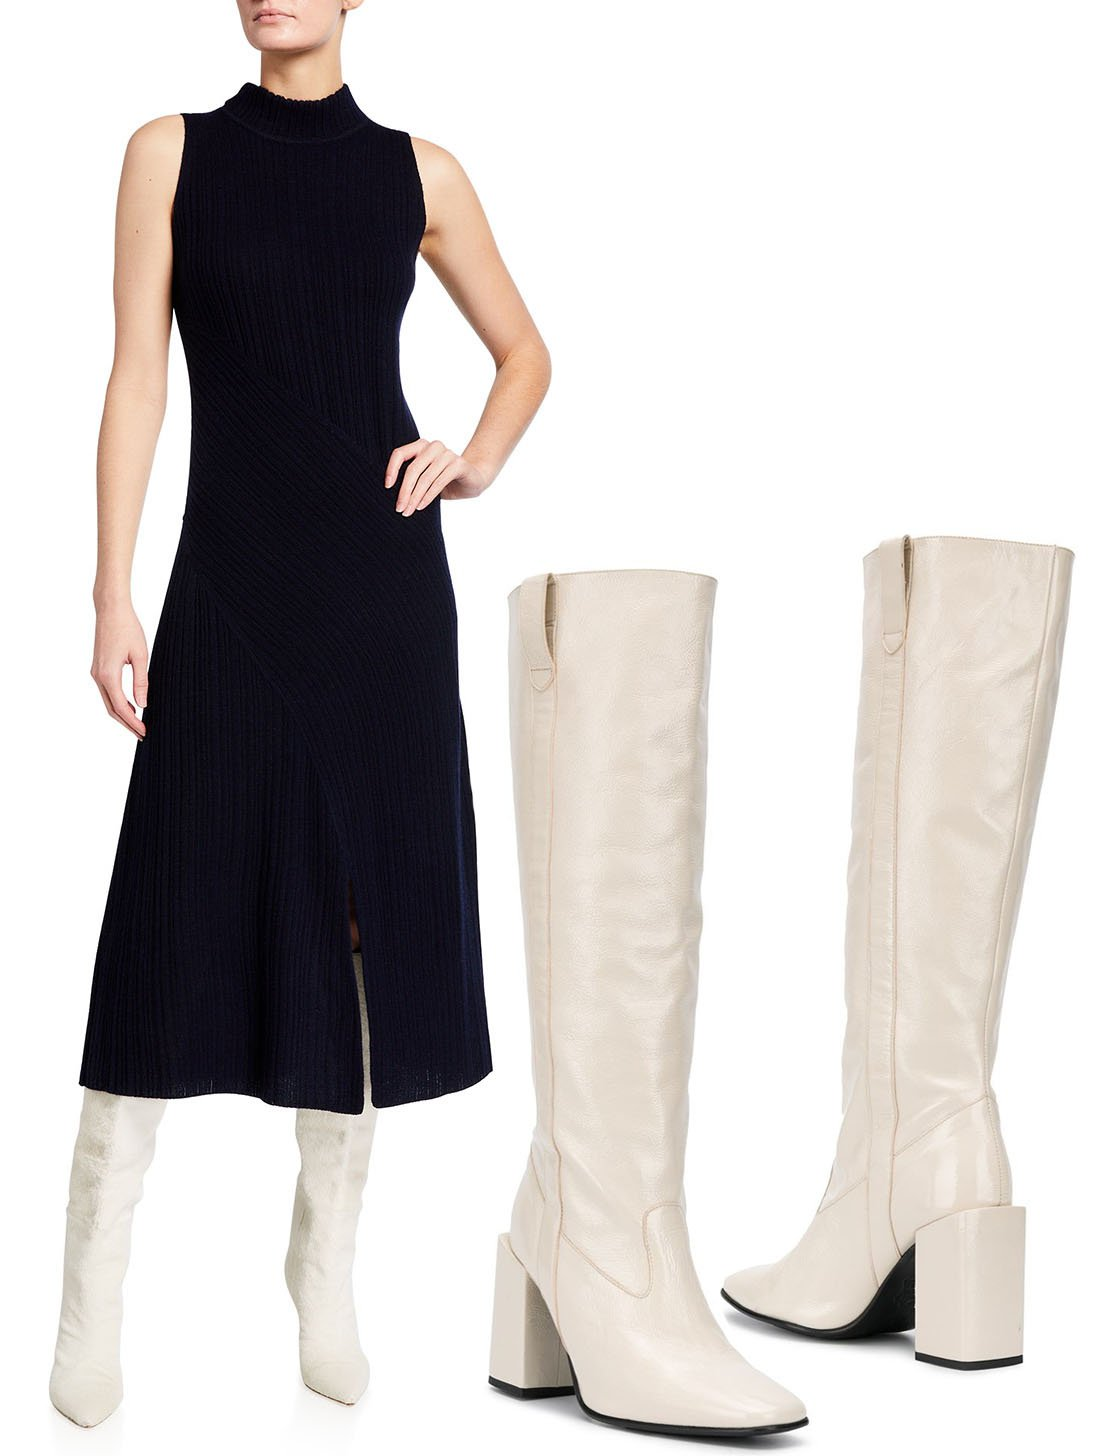 Vince Diagonal Ribbed Sleeveless Midi Dress and AMI Paris Block-Heel Knee-High Boots